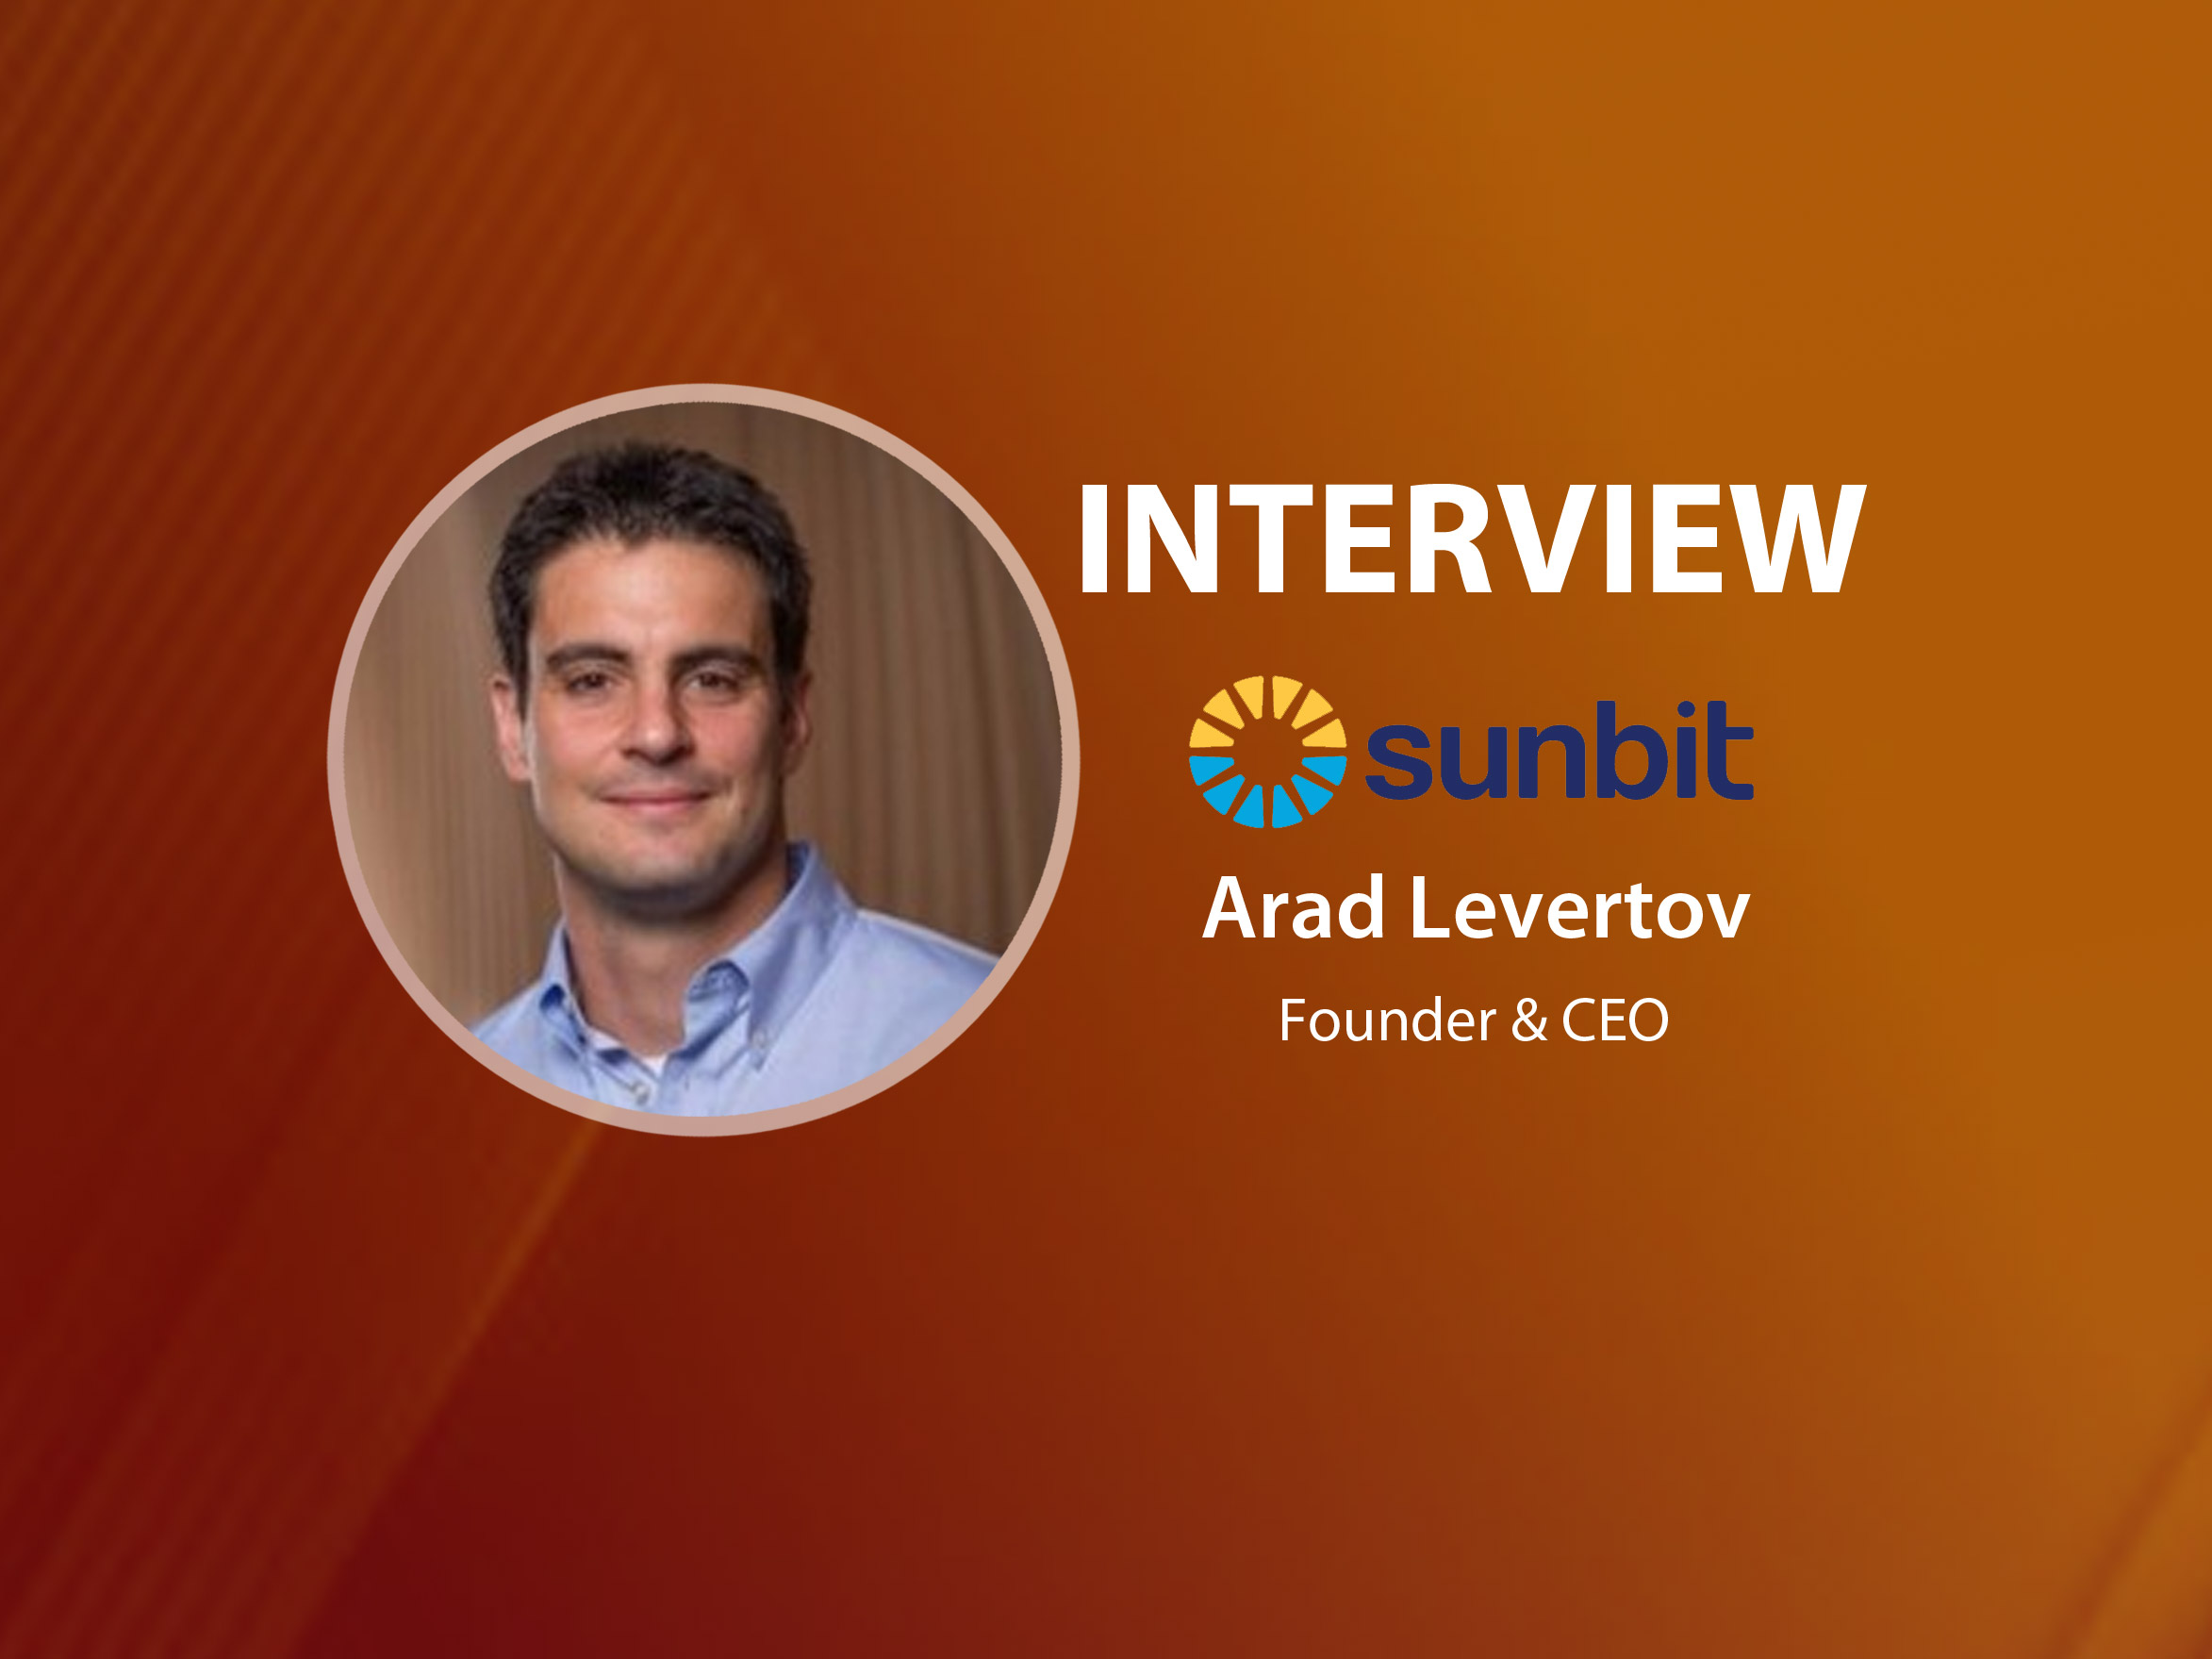 GlobalFintechSeries Interview with Arad Levertov, Founder & CEO at Sunbit